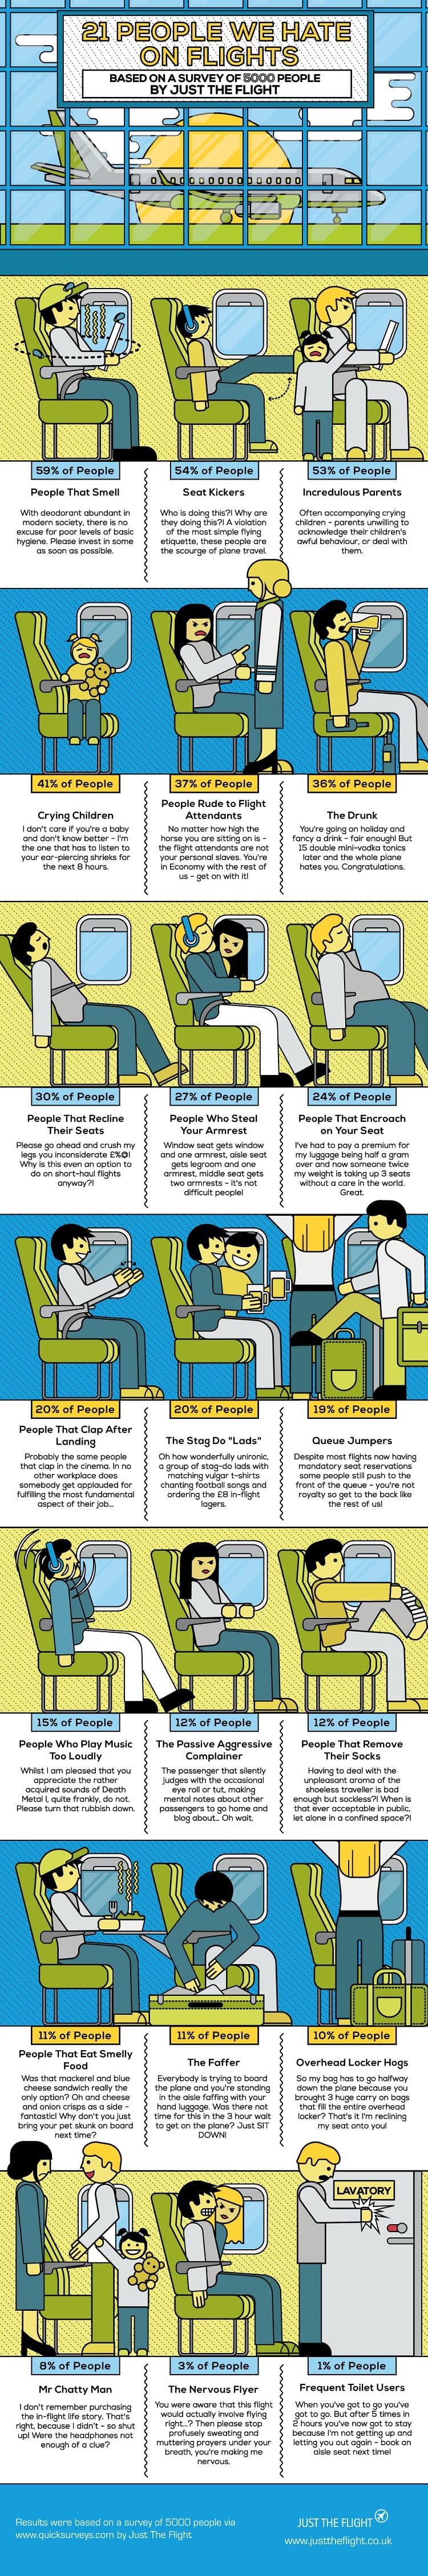 21-worst-behaviors-on-flights